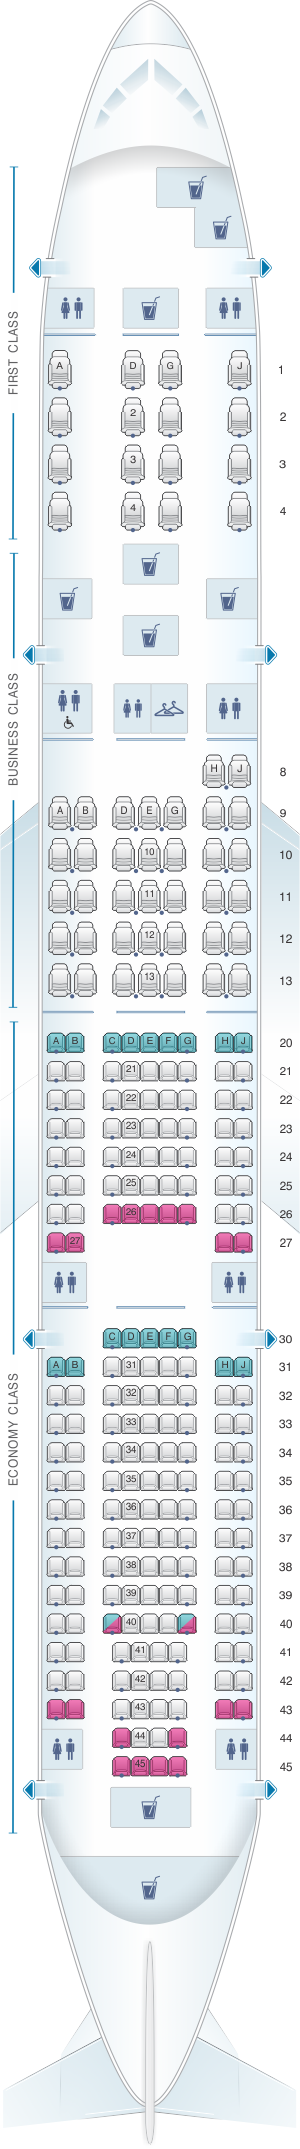 Seat map for American Airlines Boeing B777 200